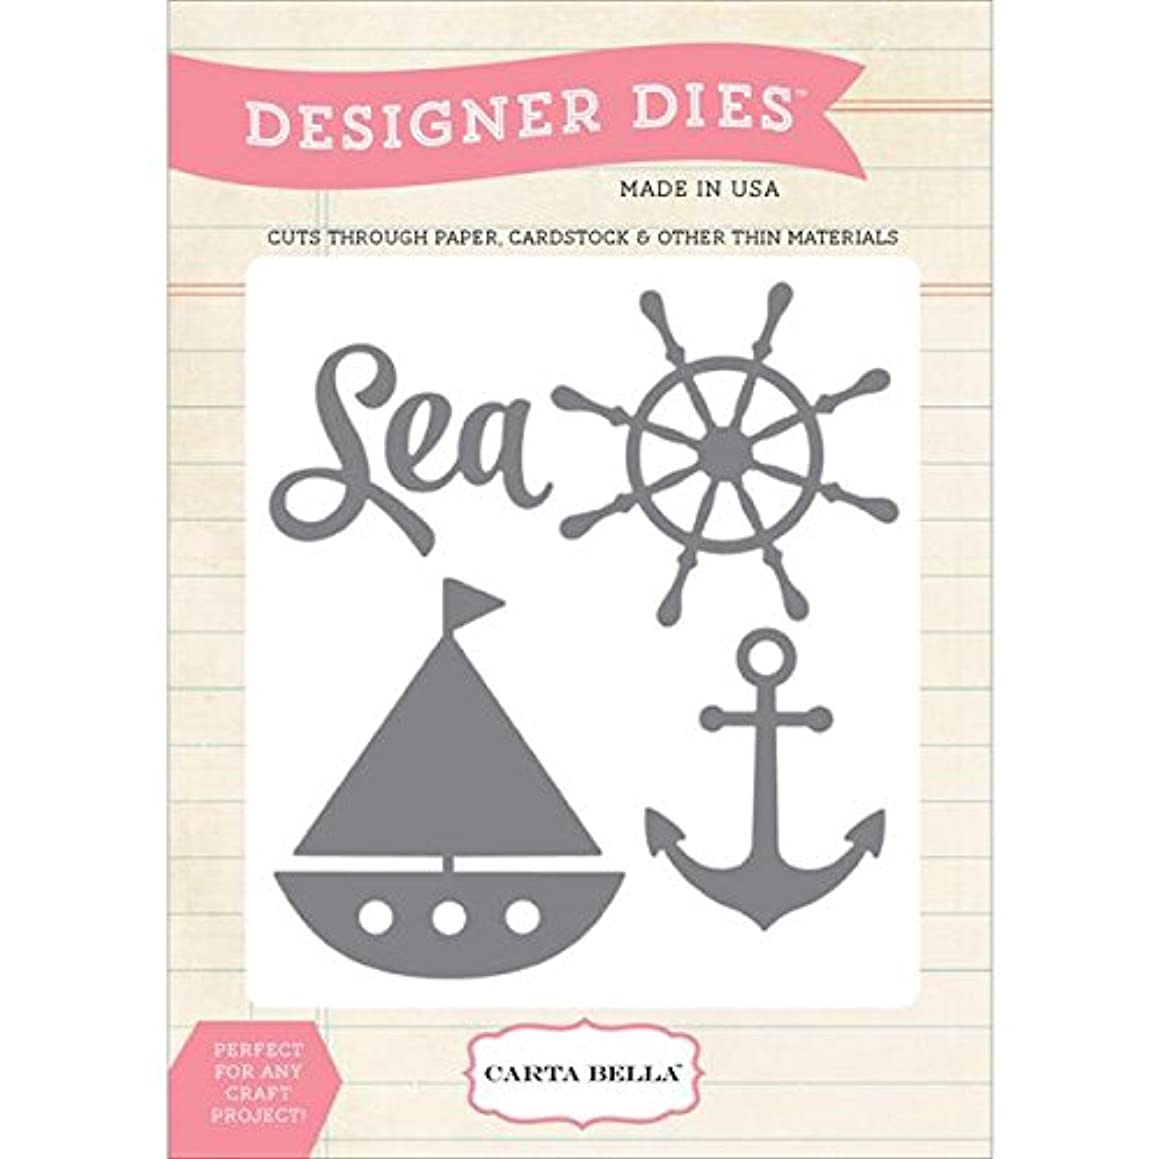 Carta Bella Paper Company CBM-Die1 Sea Ship and Anchor Die Scrapbook